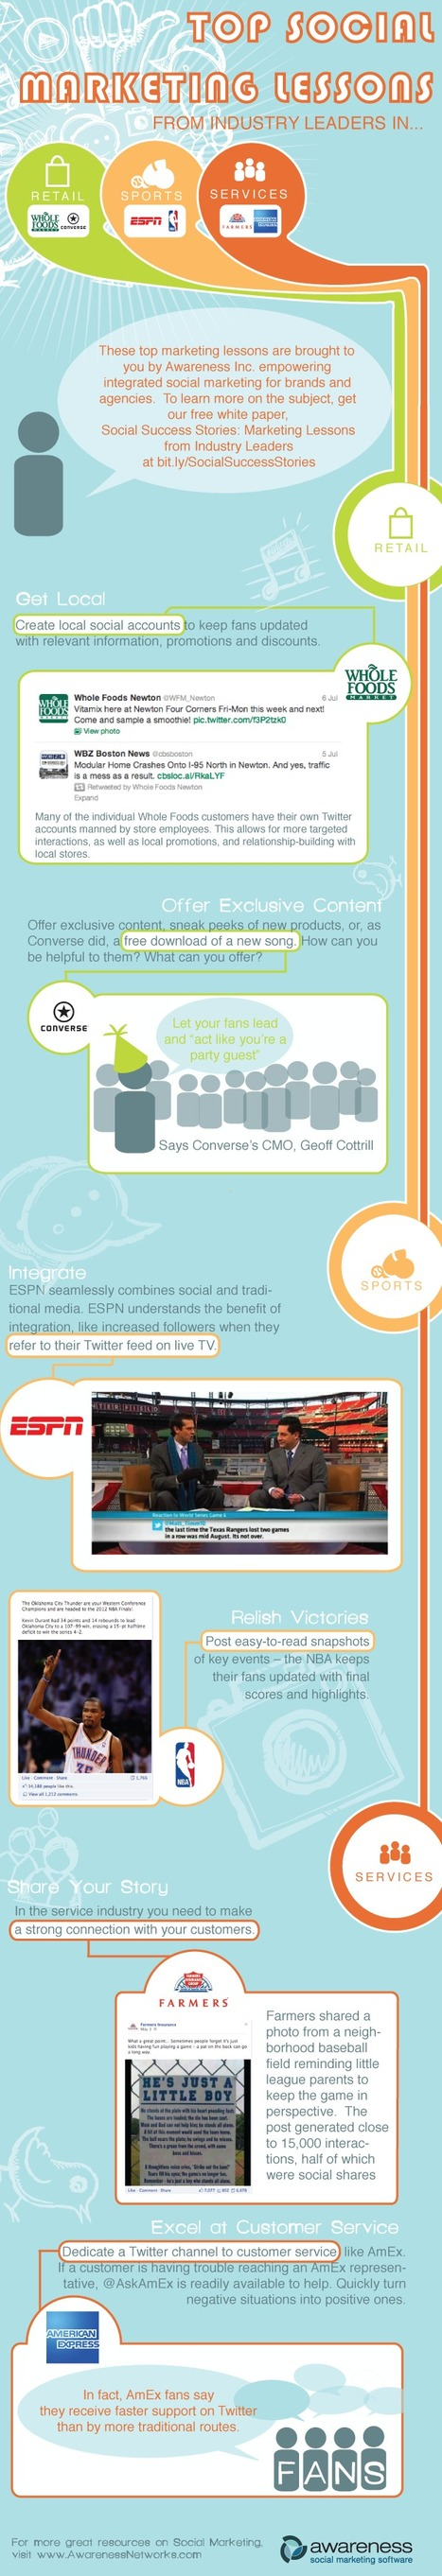 Top Social Marketing Lessons from Leaders in Sports, Retail, and Services [Infographic] | Sports Marketing | Scoop.it